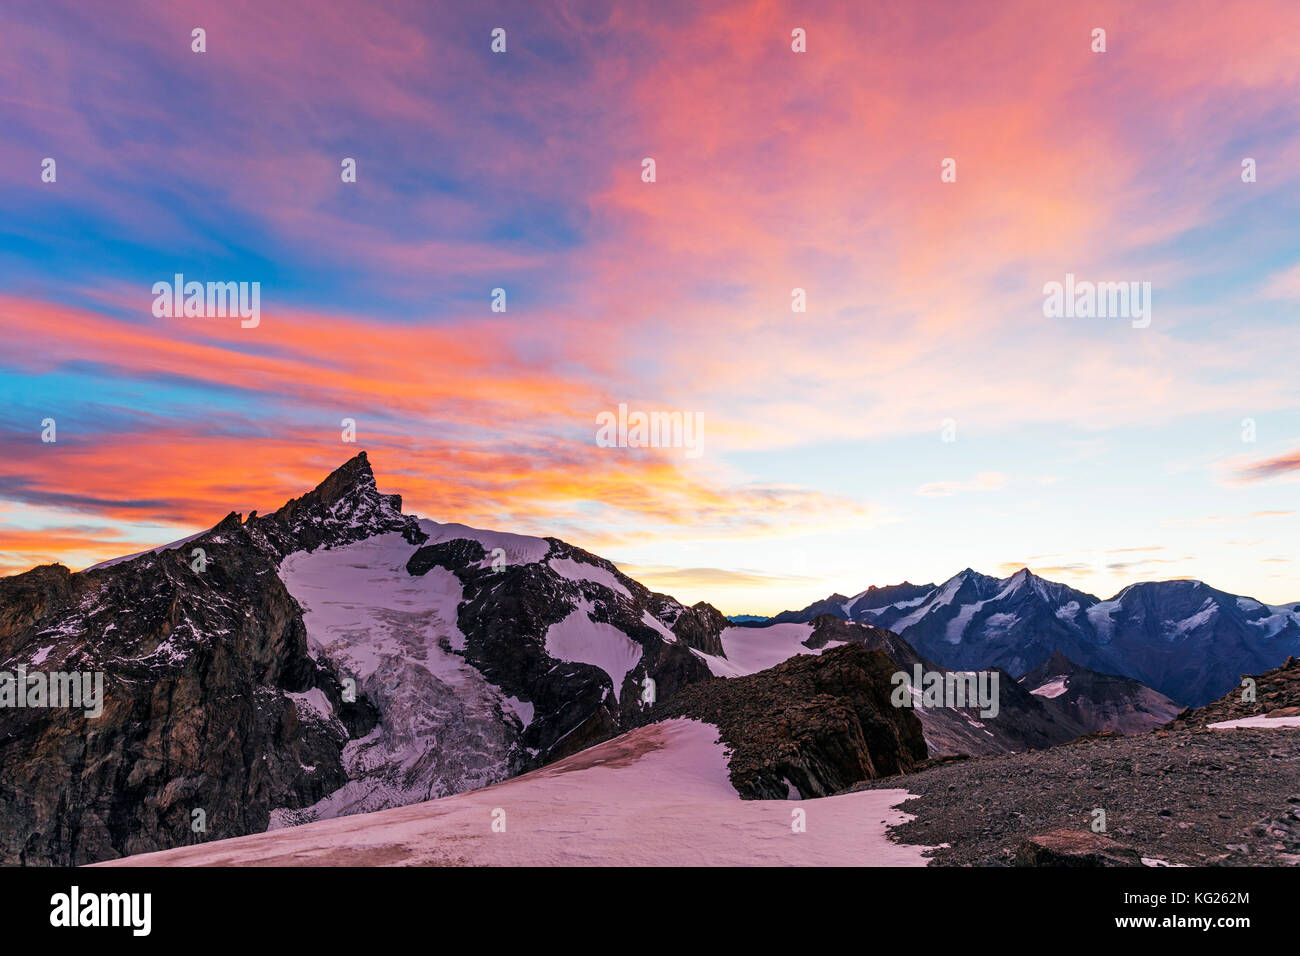 Sunrise view of Zinalrothorn, 4421m, from Ober Gabelhorn, 4063m,  Zermatt, Valais, Swiss Alps, Switzerland, Europe Stock Photo